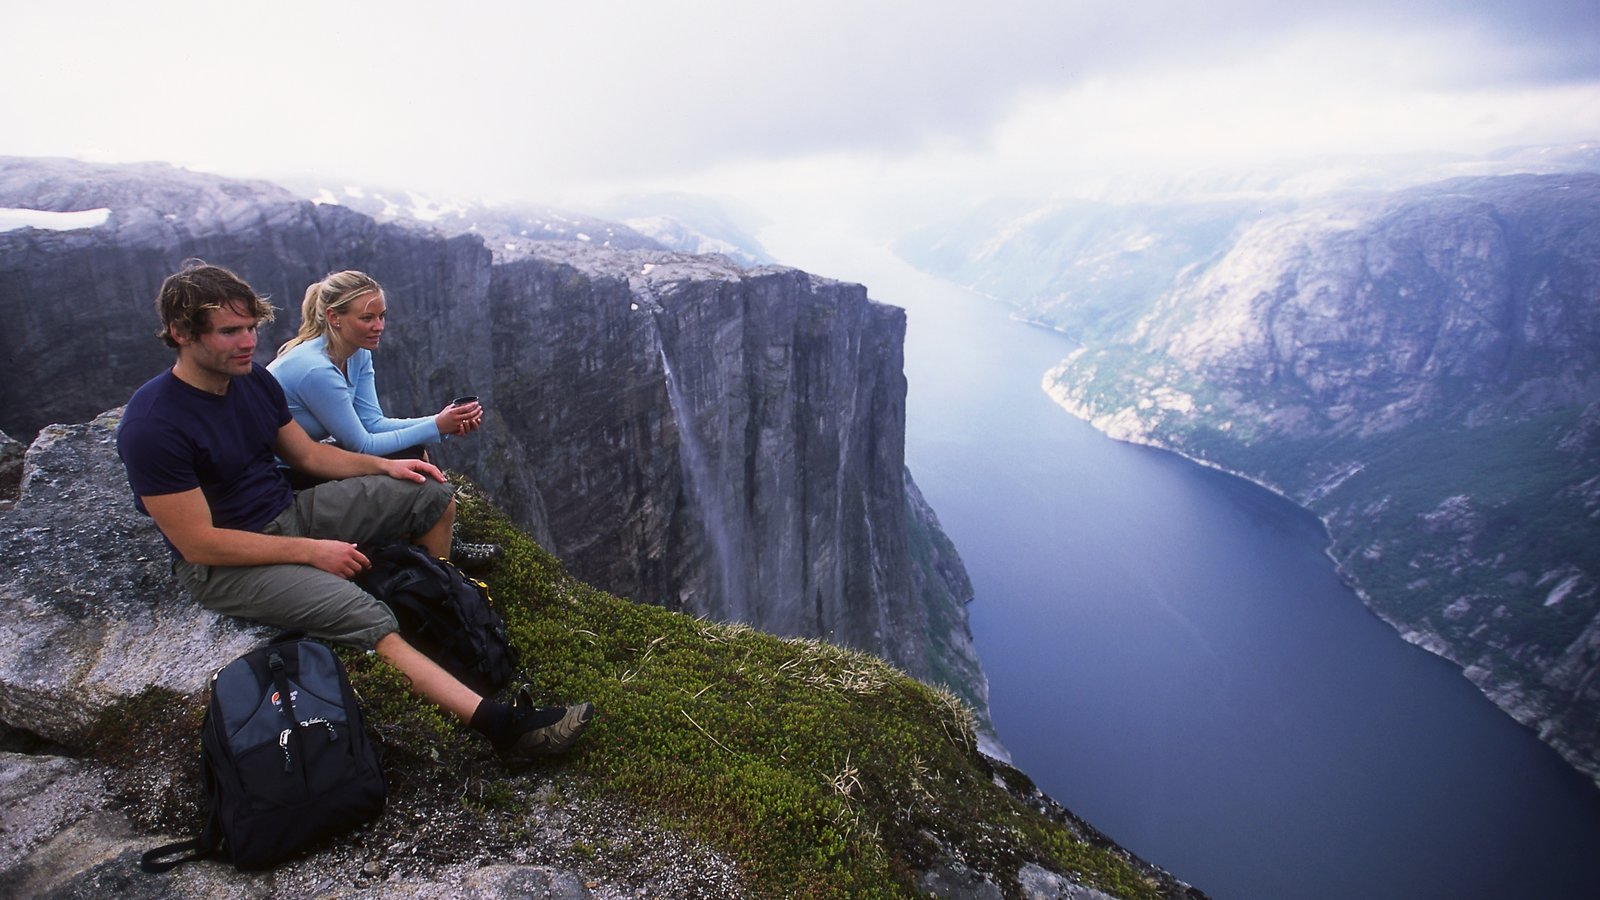 Kjerag featuring landscape views, a gorge or canyon and a river or creek